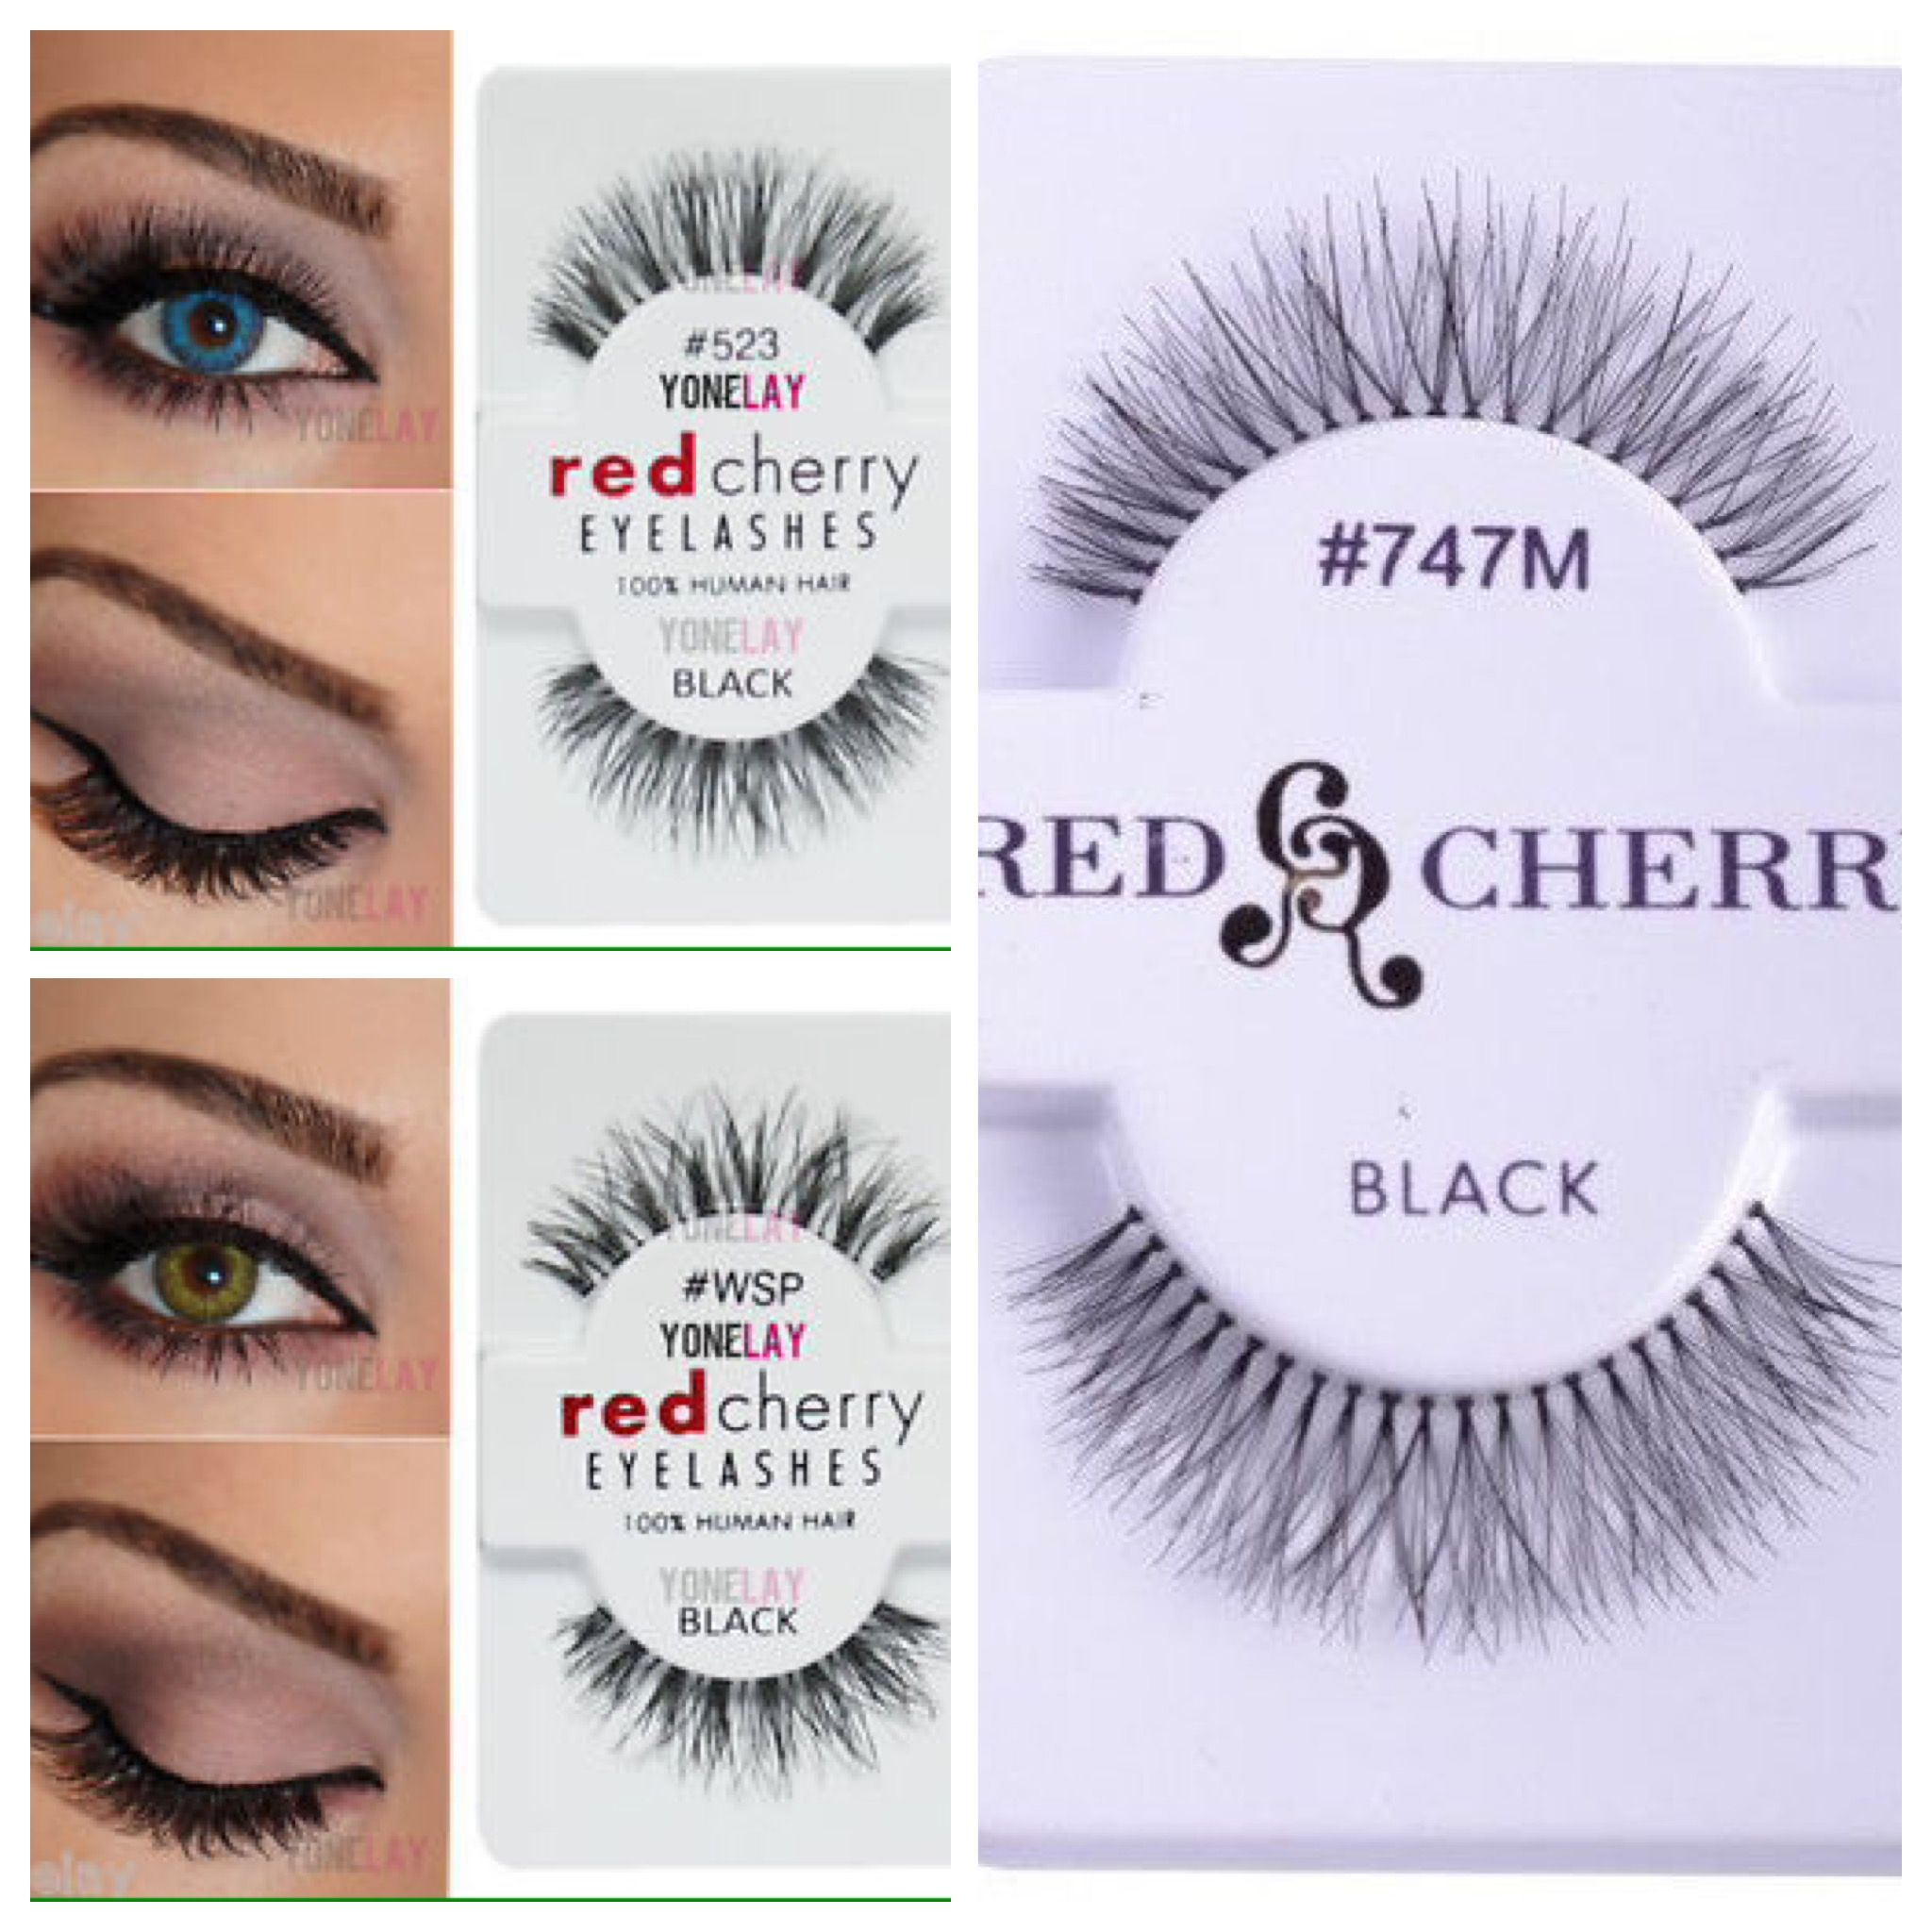 126943a96eb Red cherry lashes: #523, #747M, #WSP | Makeup love in 2019 | Beauty ...